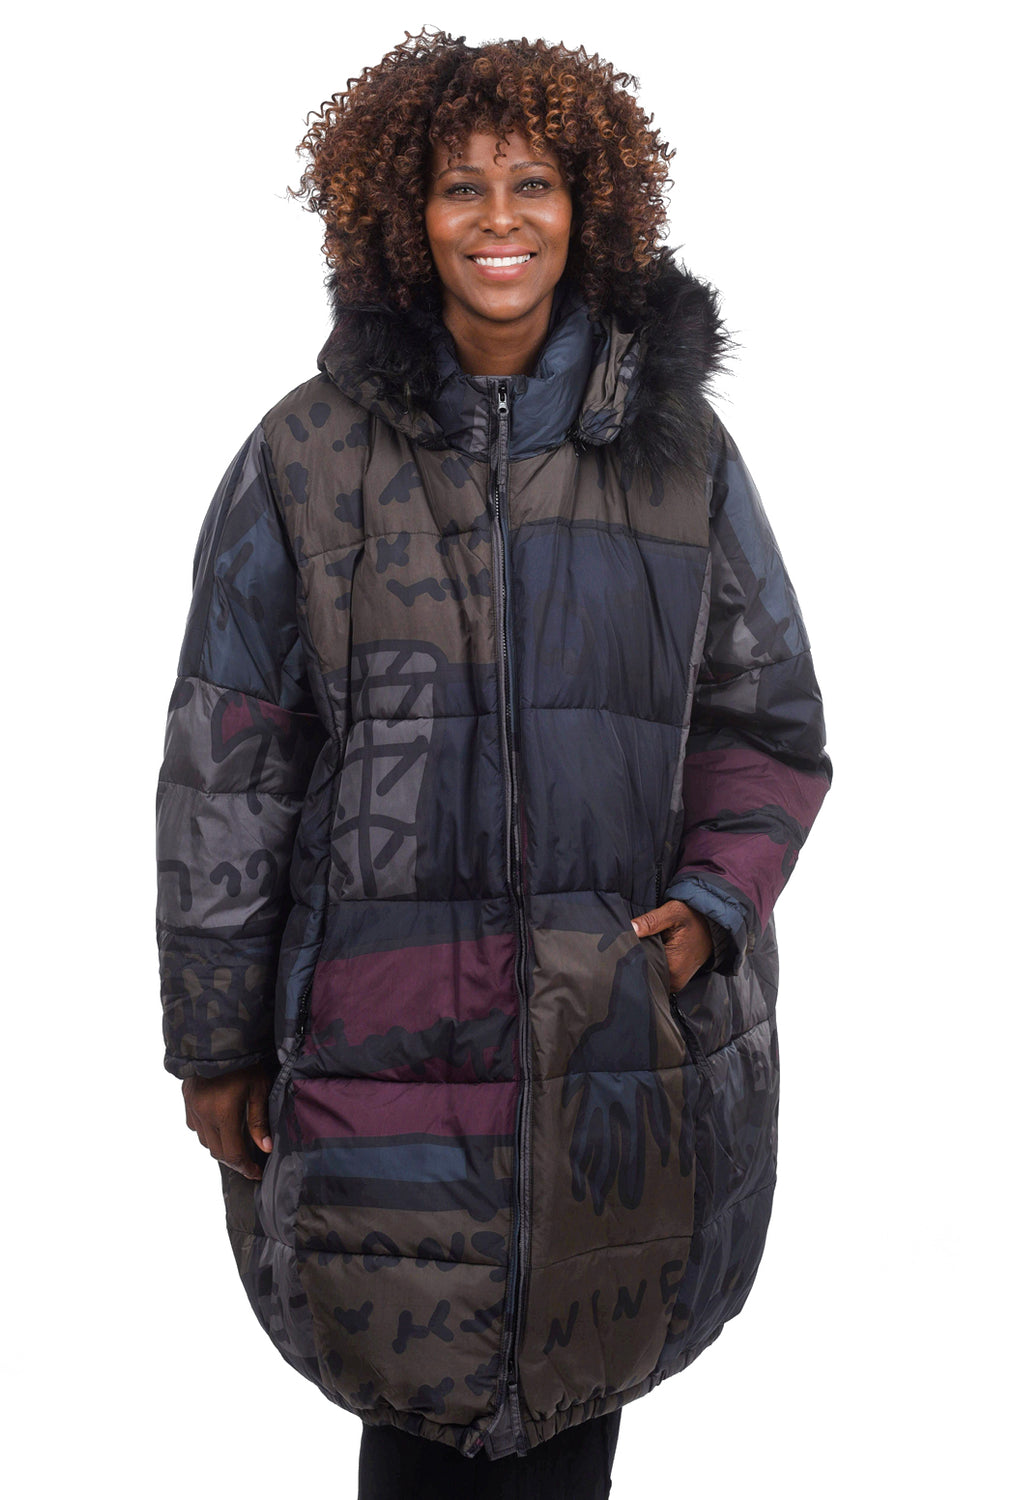 Rundholz Black Label Oversized Print Puffer Coat, Multi Color One Size Multi